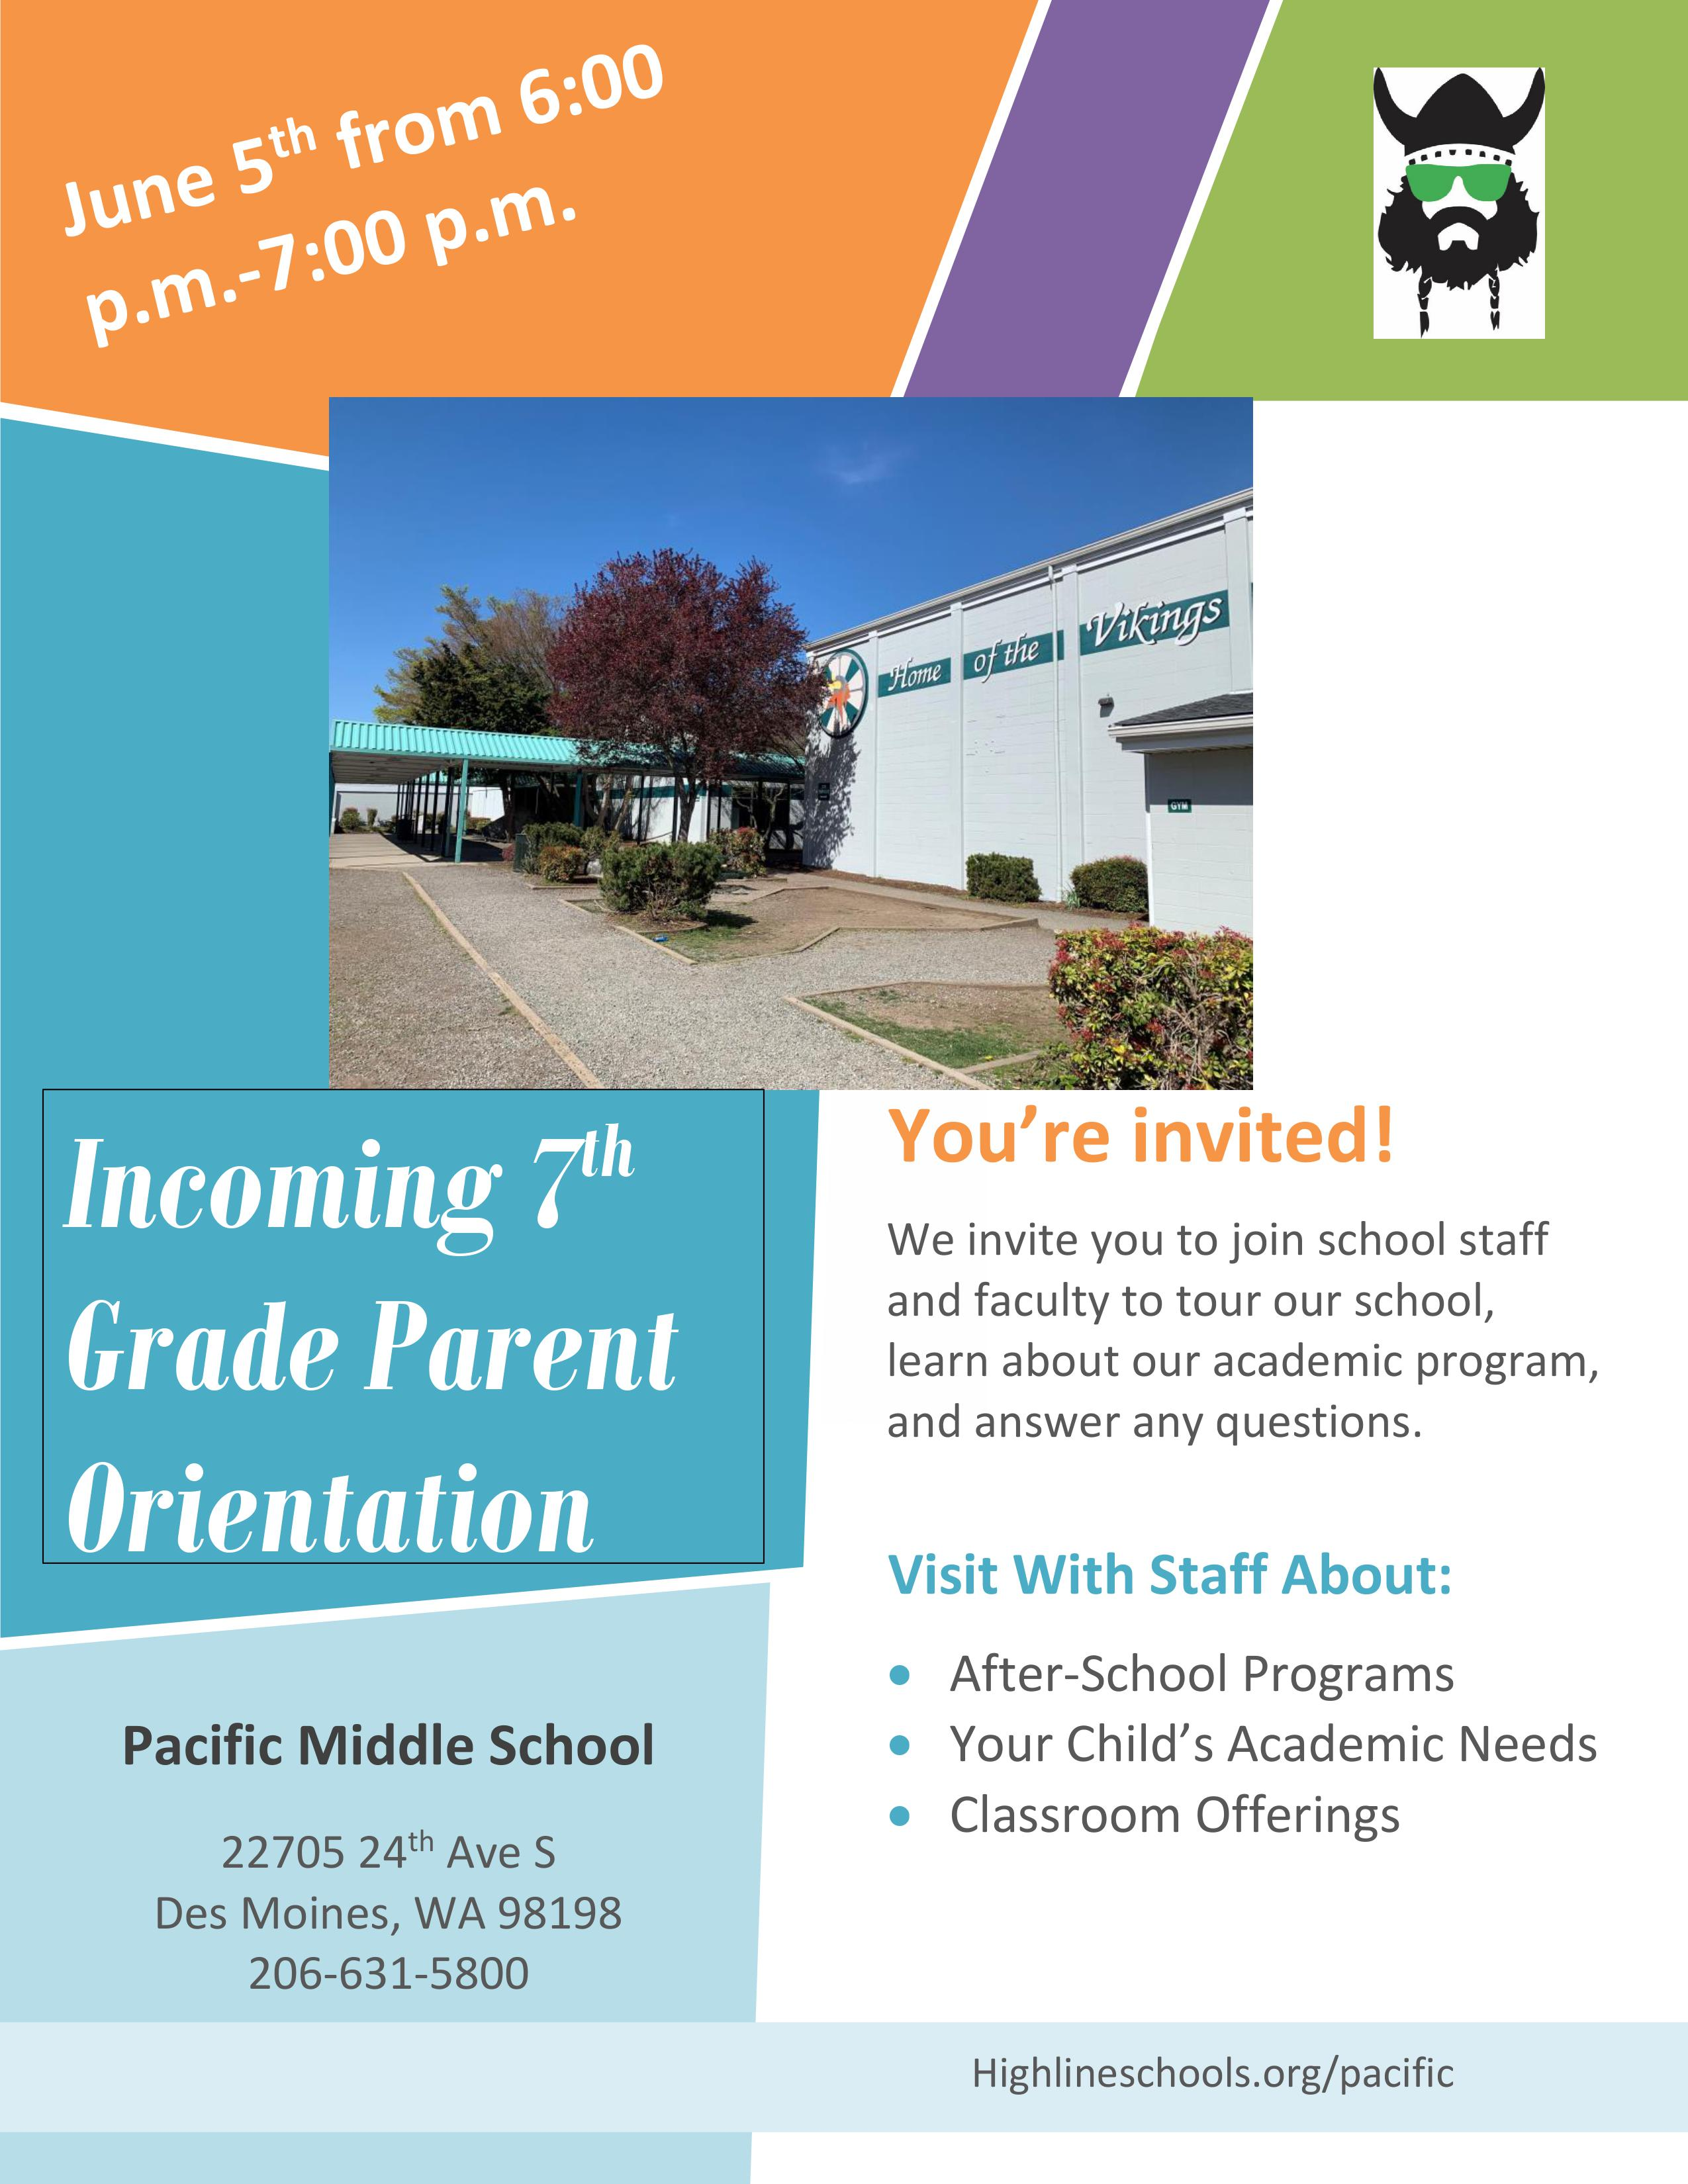 Join us June 5th from 6:00 pm to 7:00 pm to learn more about Pacific.